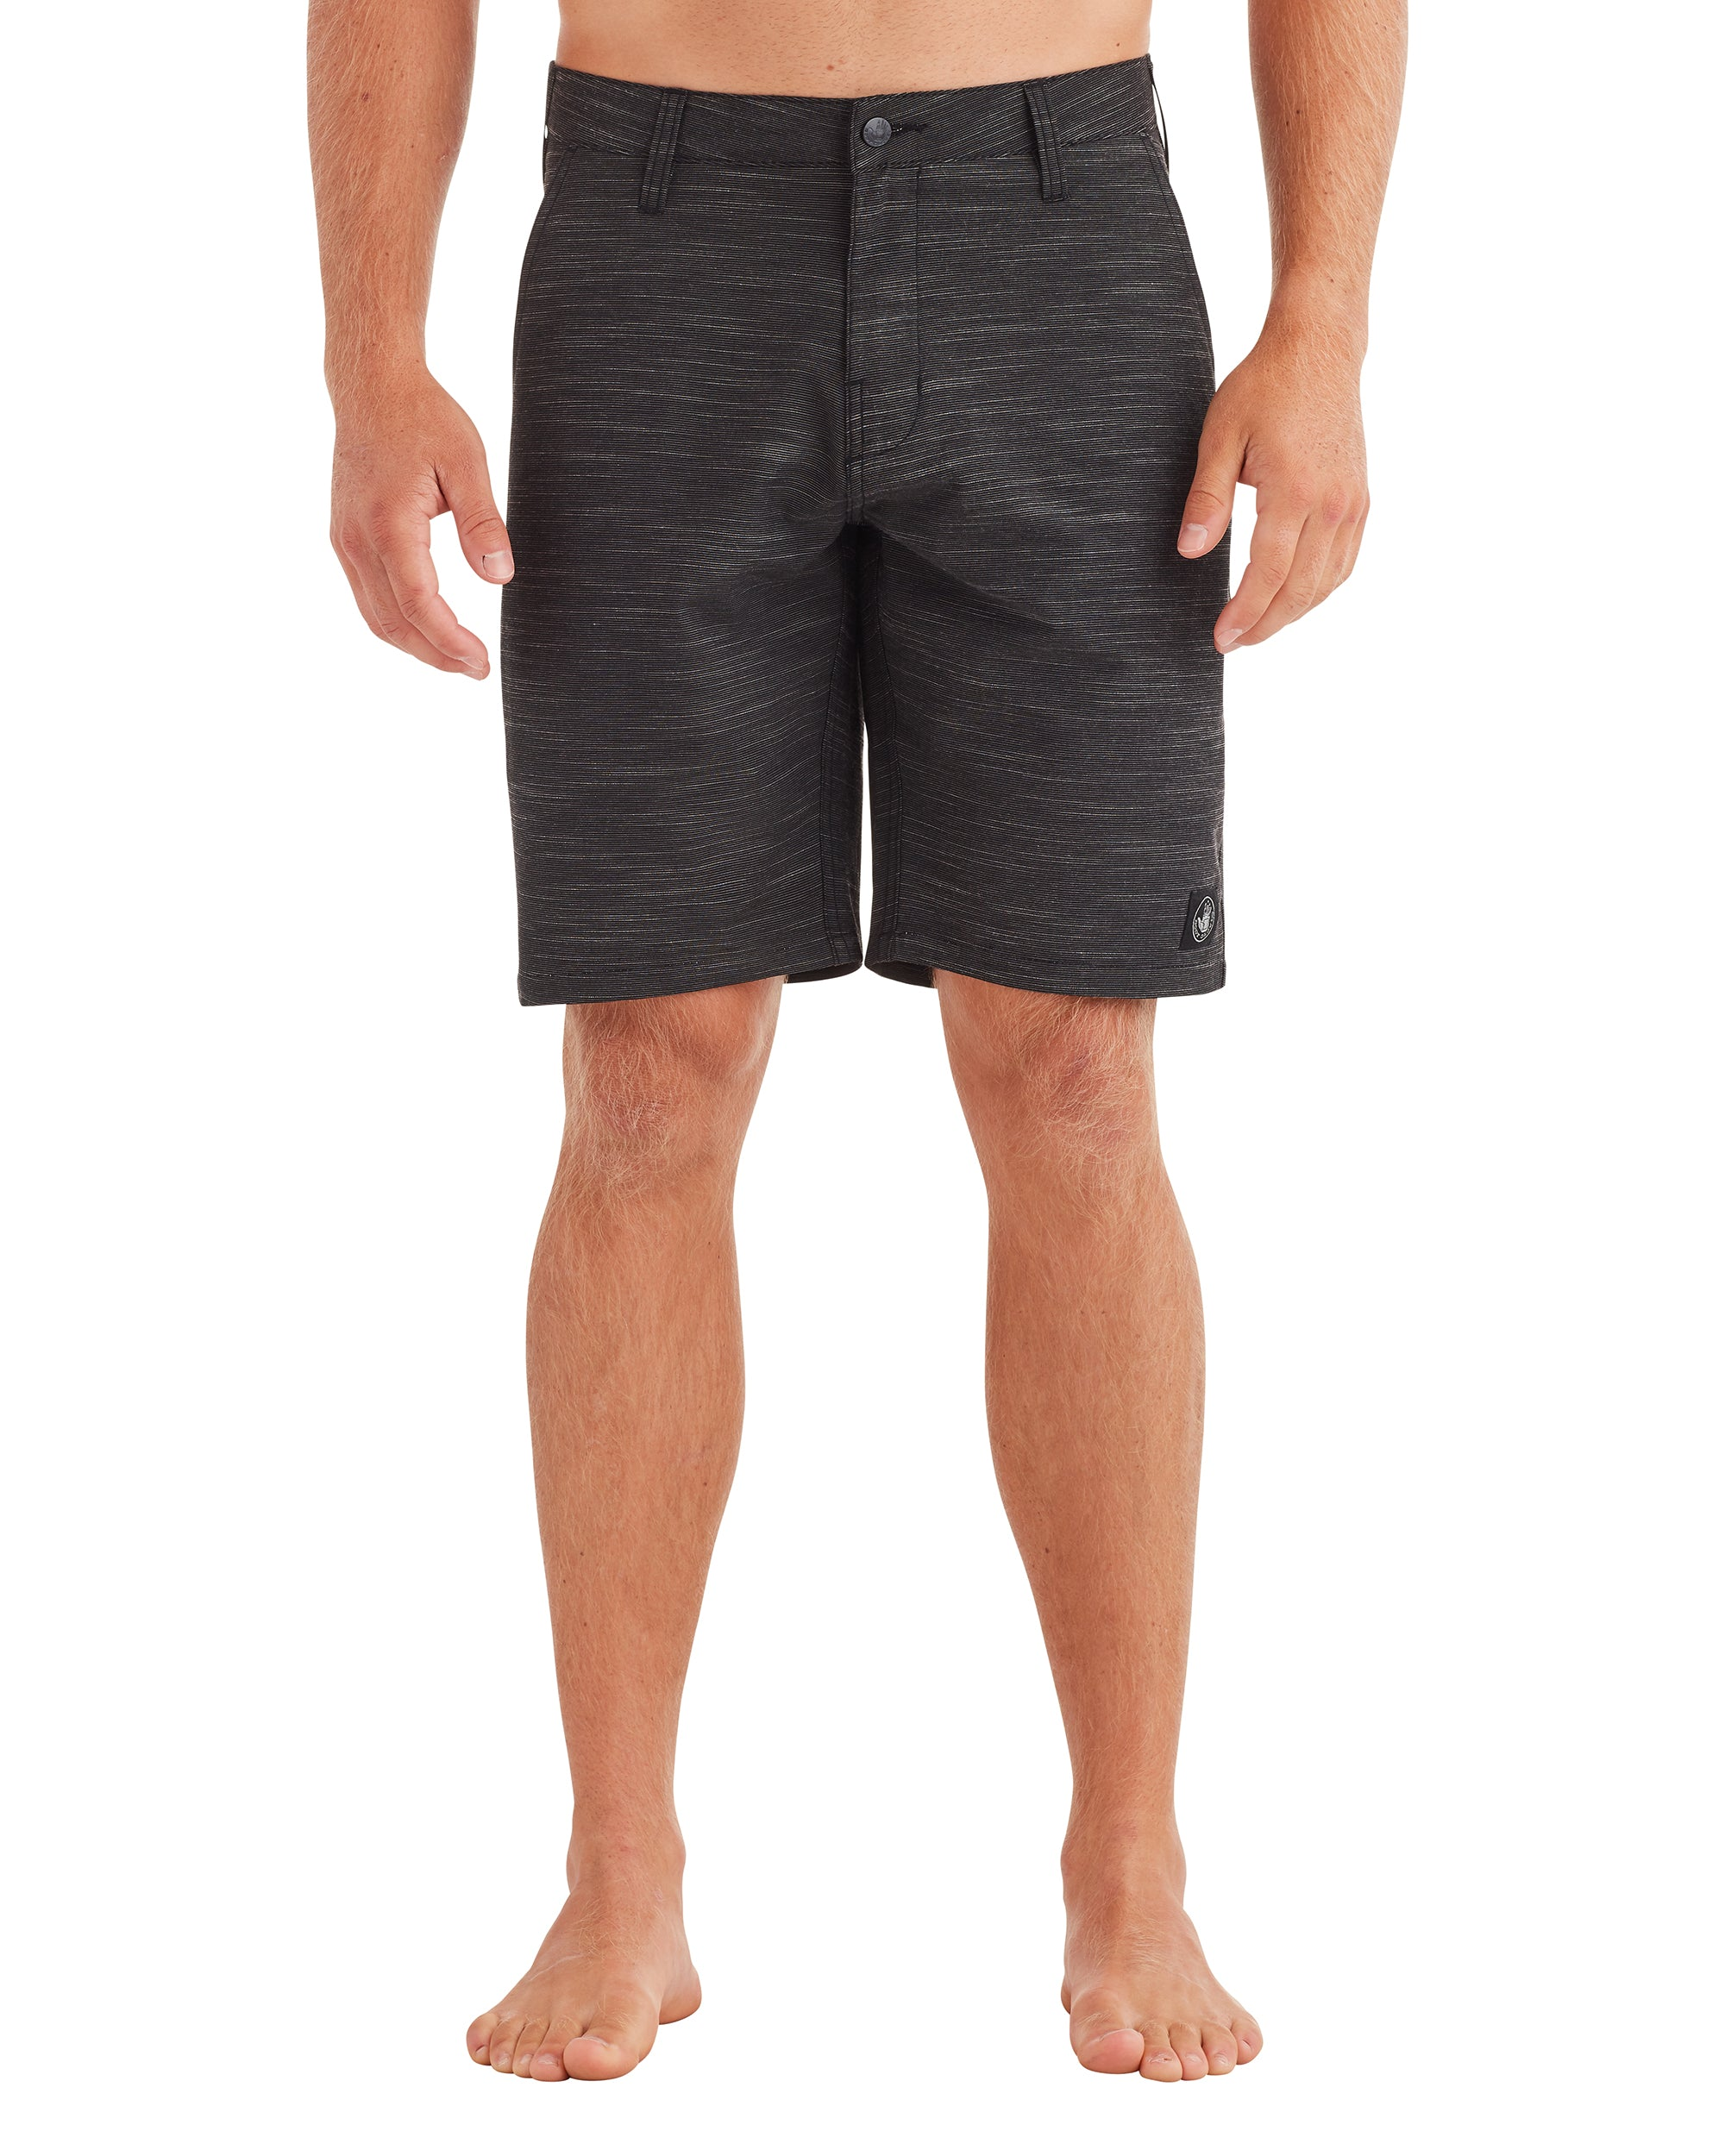 Men's Solid Slub Hybrid Swim Short - Black